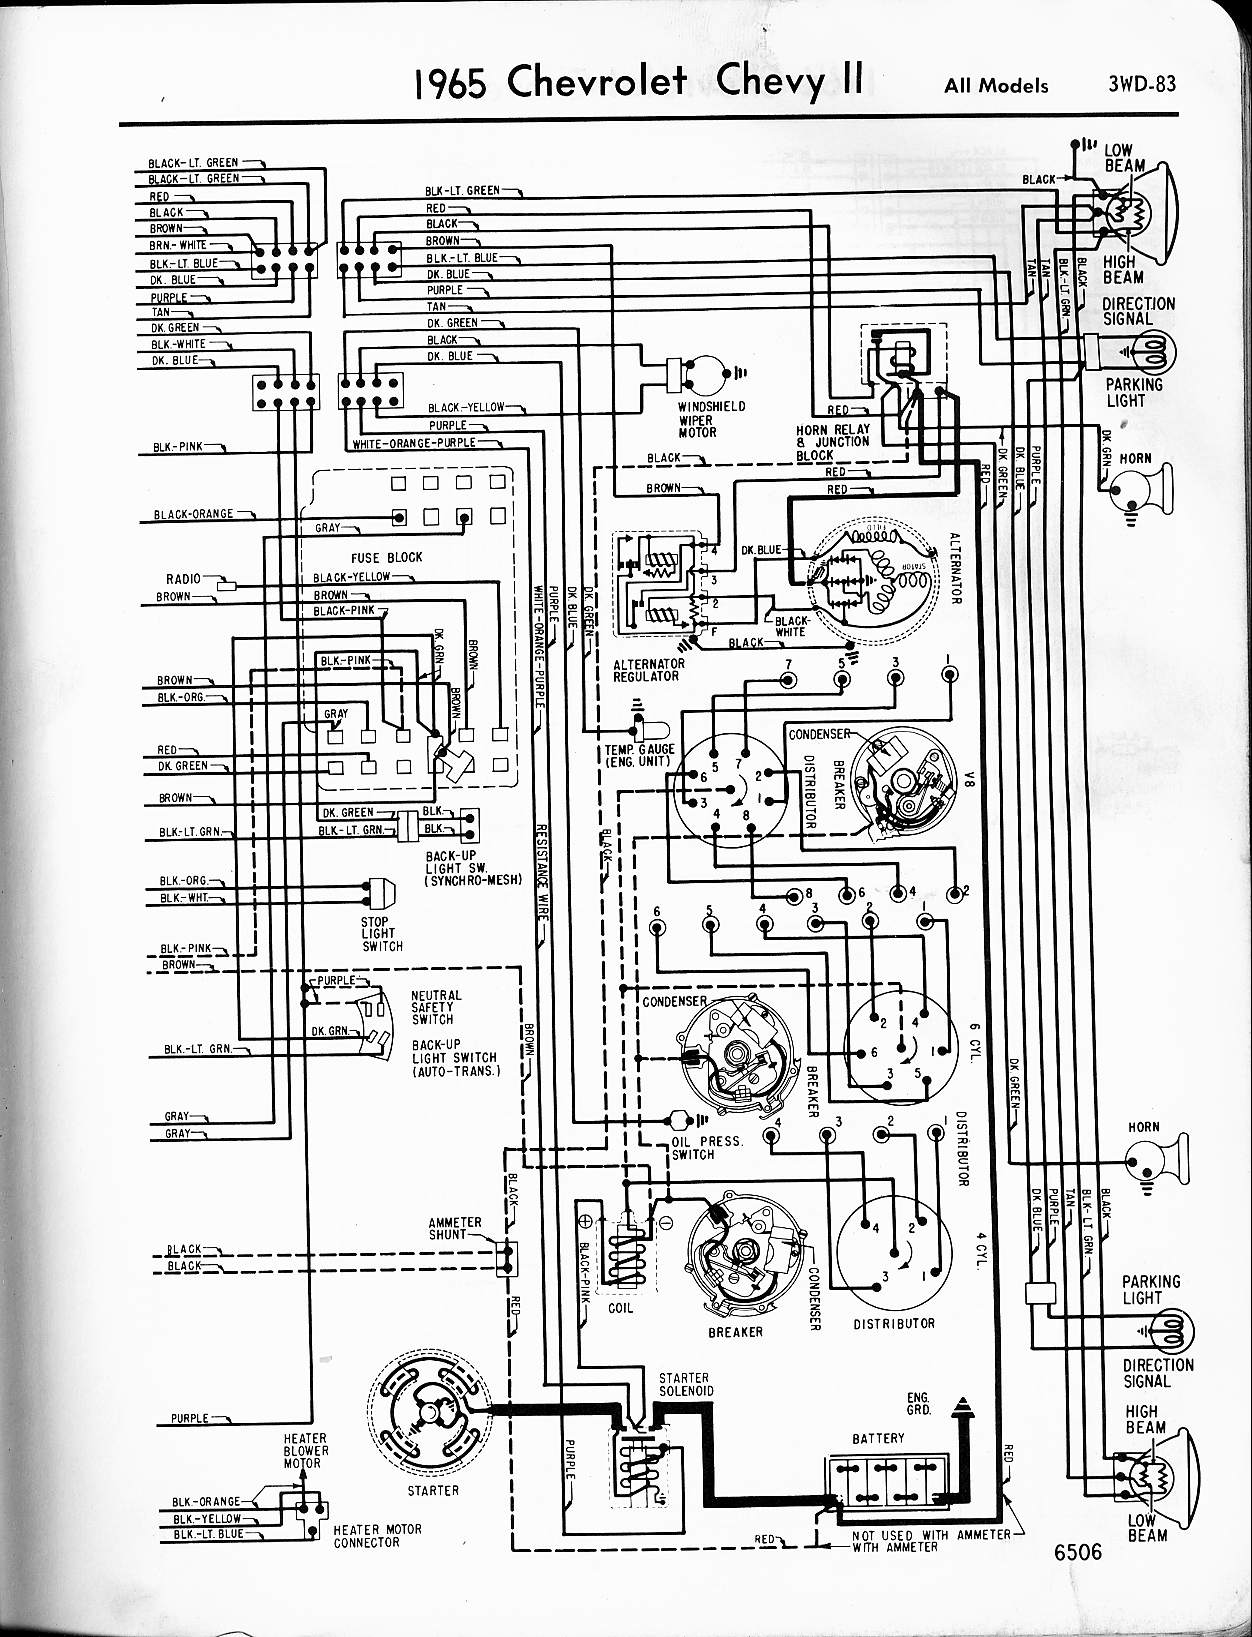 Chevy Diagrams Wiring Library 1954 Ford 8n Diagram Schematic 1965 Ii Figure A B